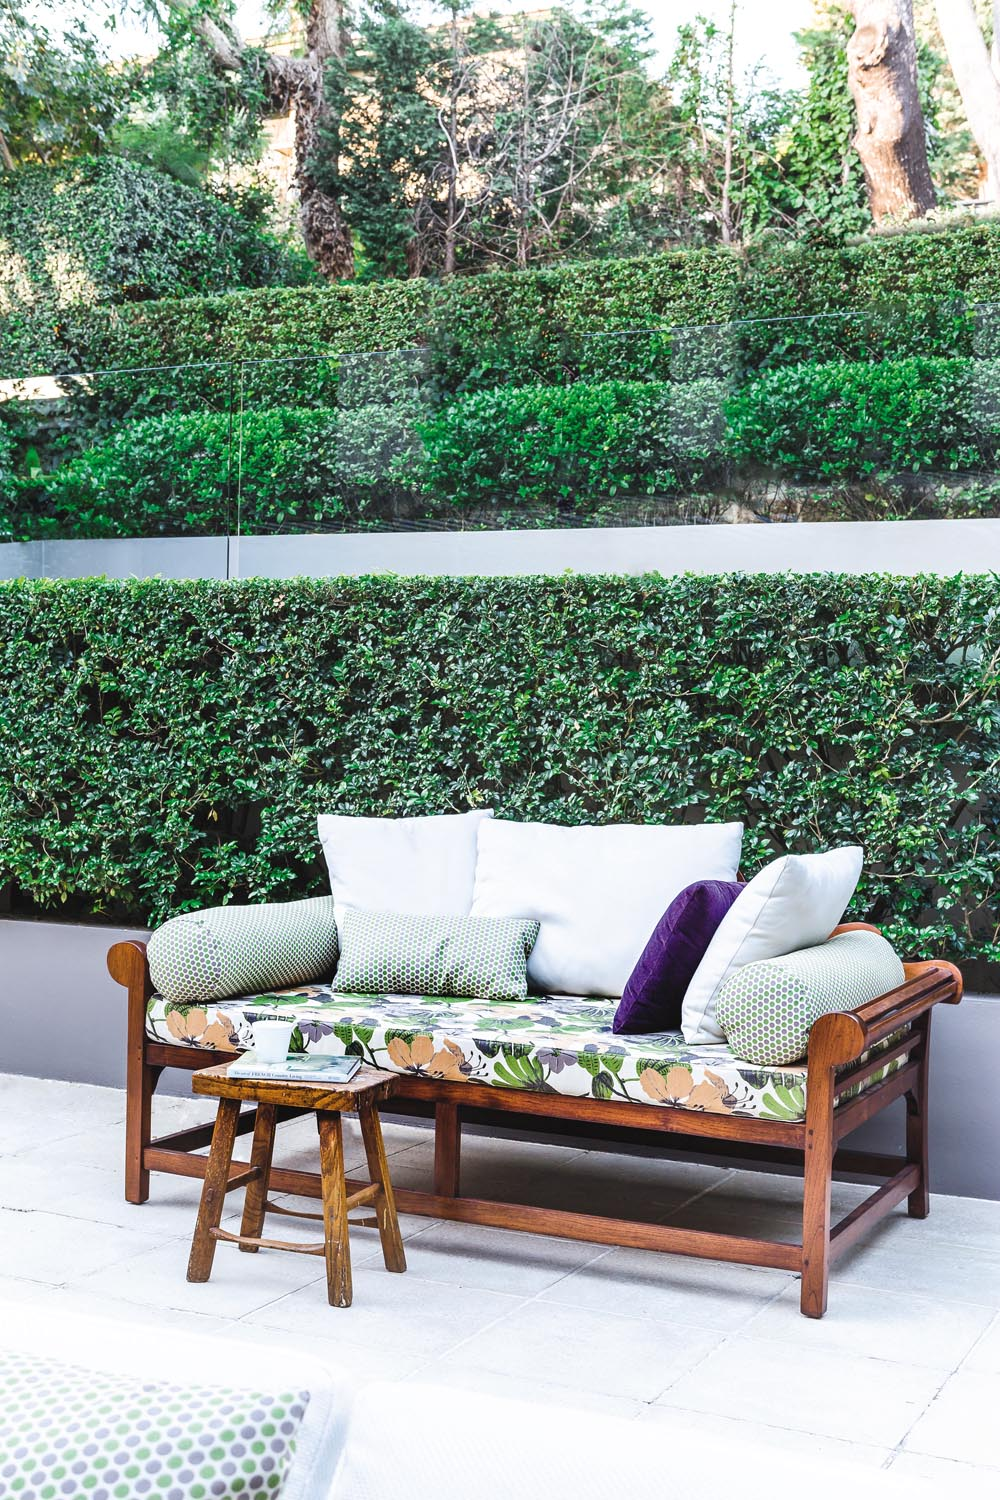 The botanic-inspired fabric on the daybed brings extra life to this area